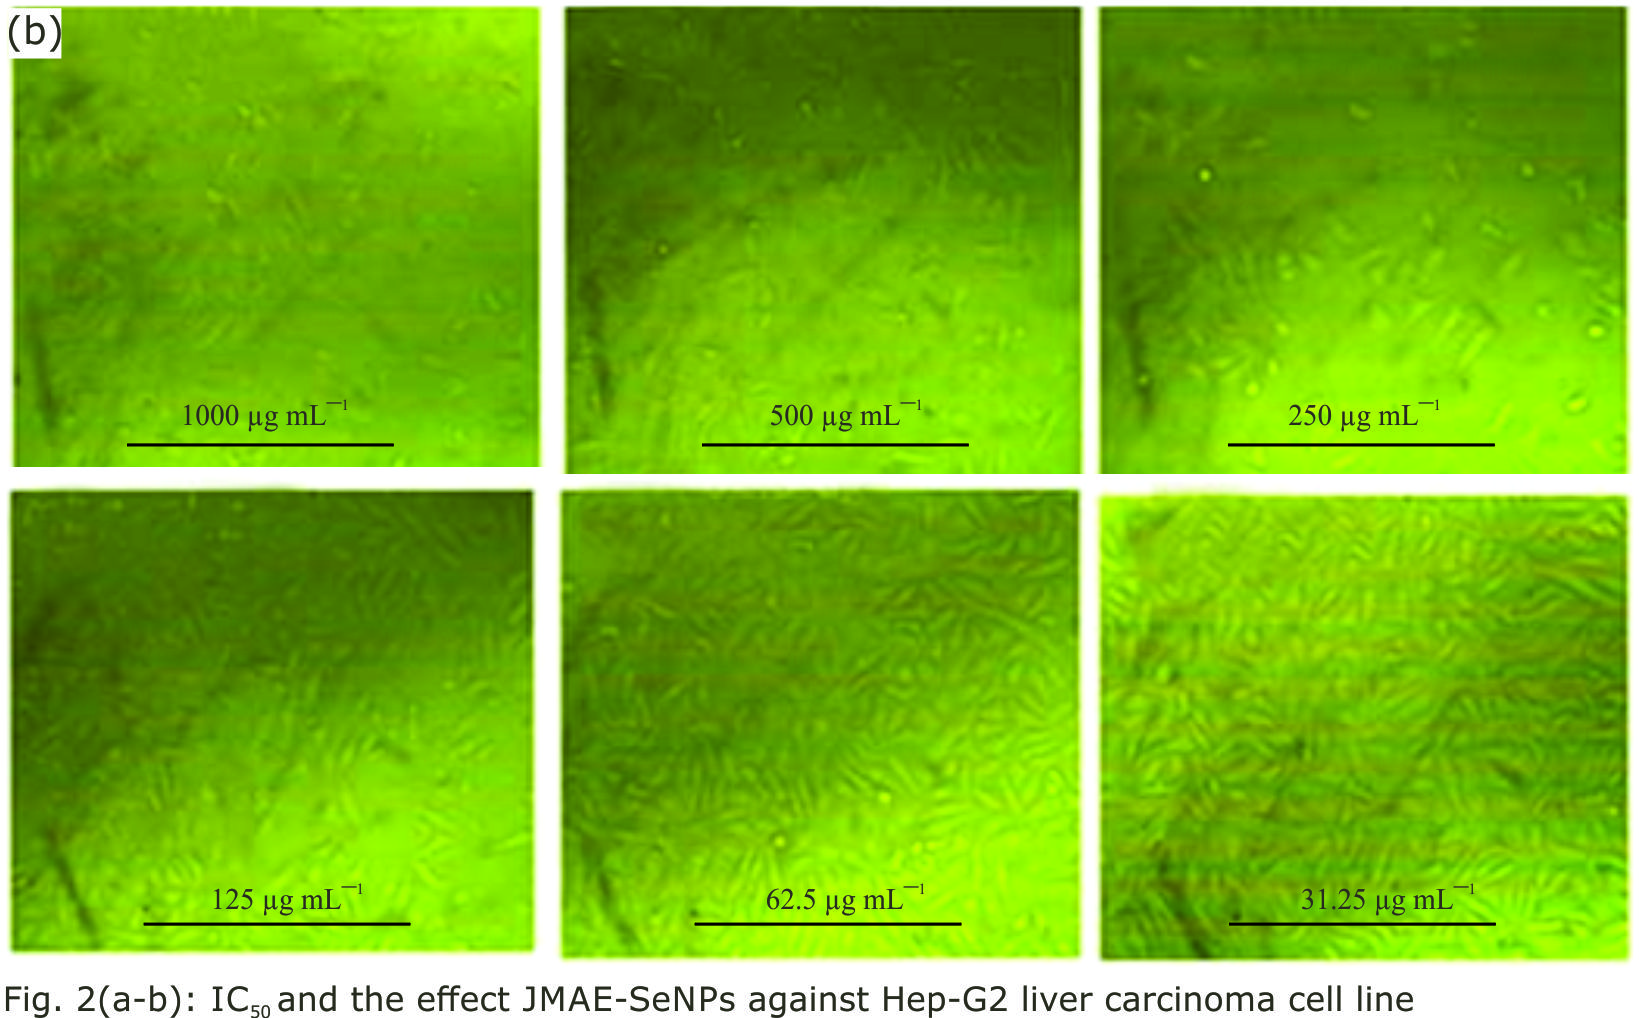 Image for - Protective Effects of Jasonia Montana-Selenium Nanoparticles Against Doxorubicin-Induced Liver Toxicity